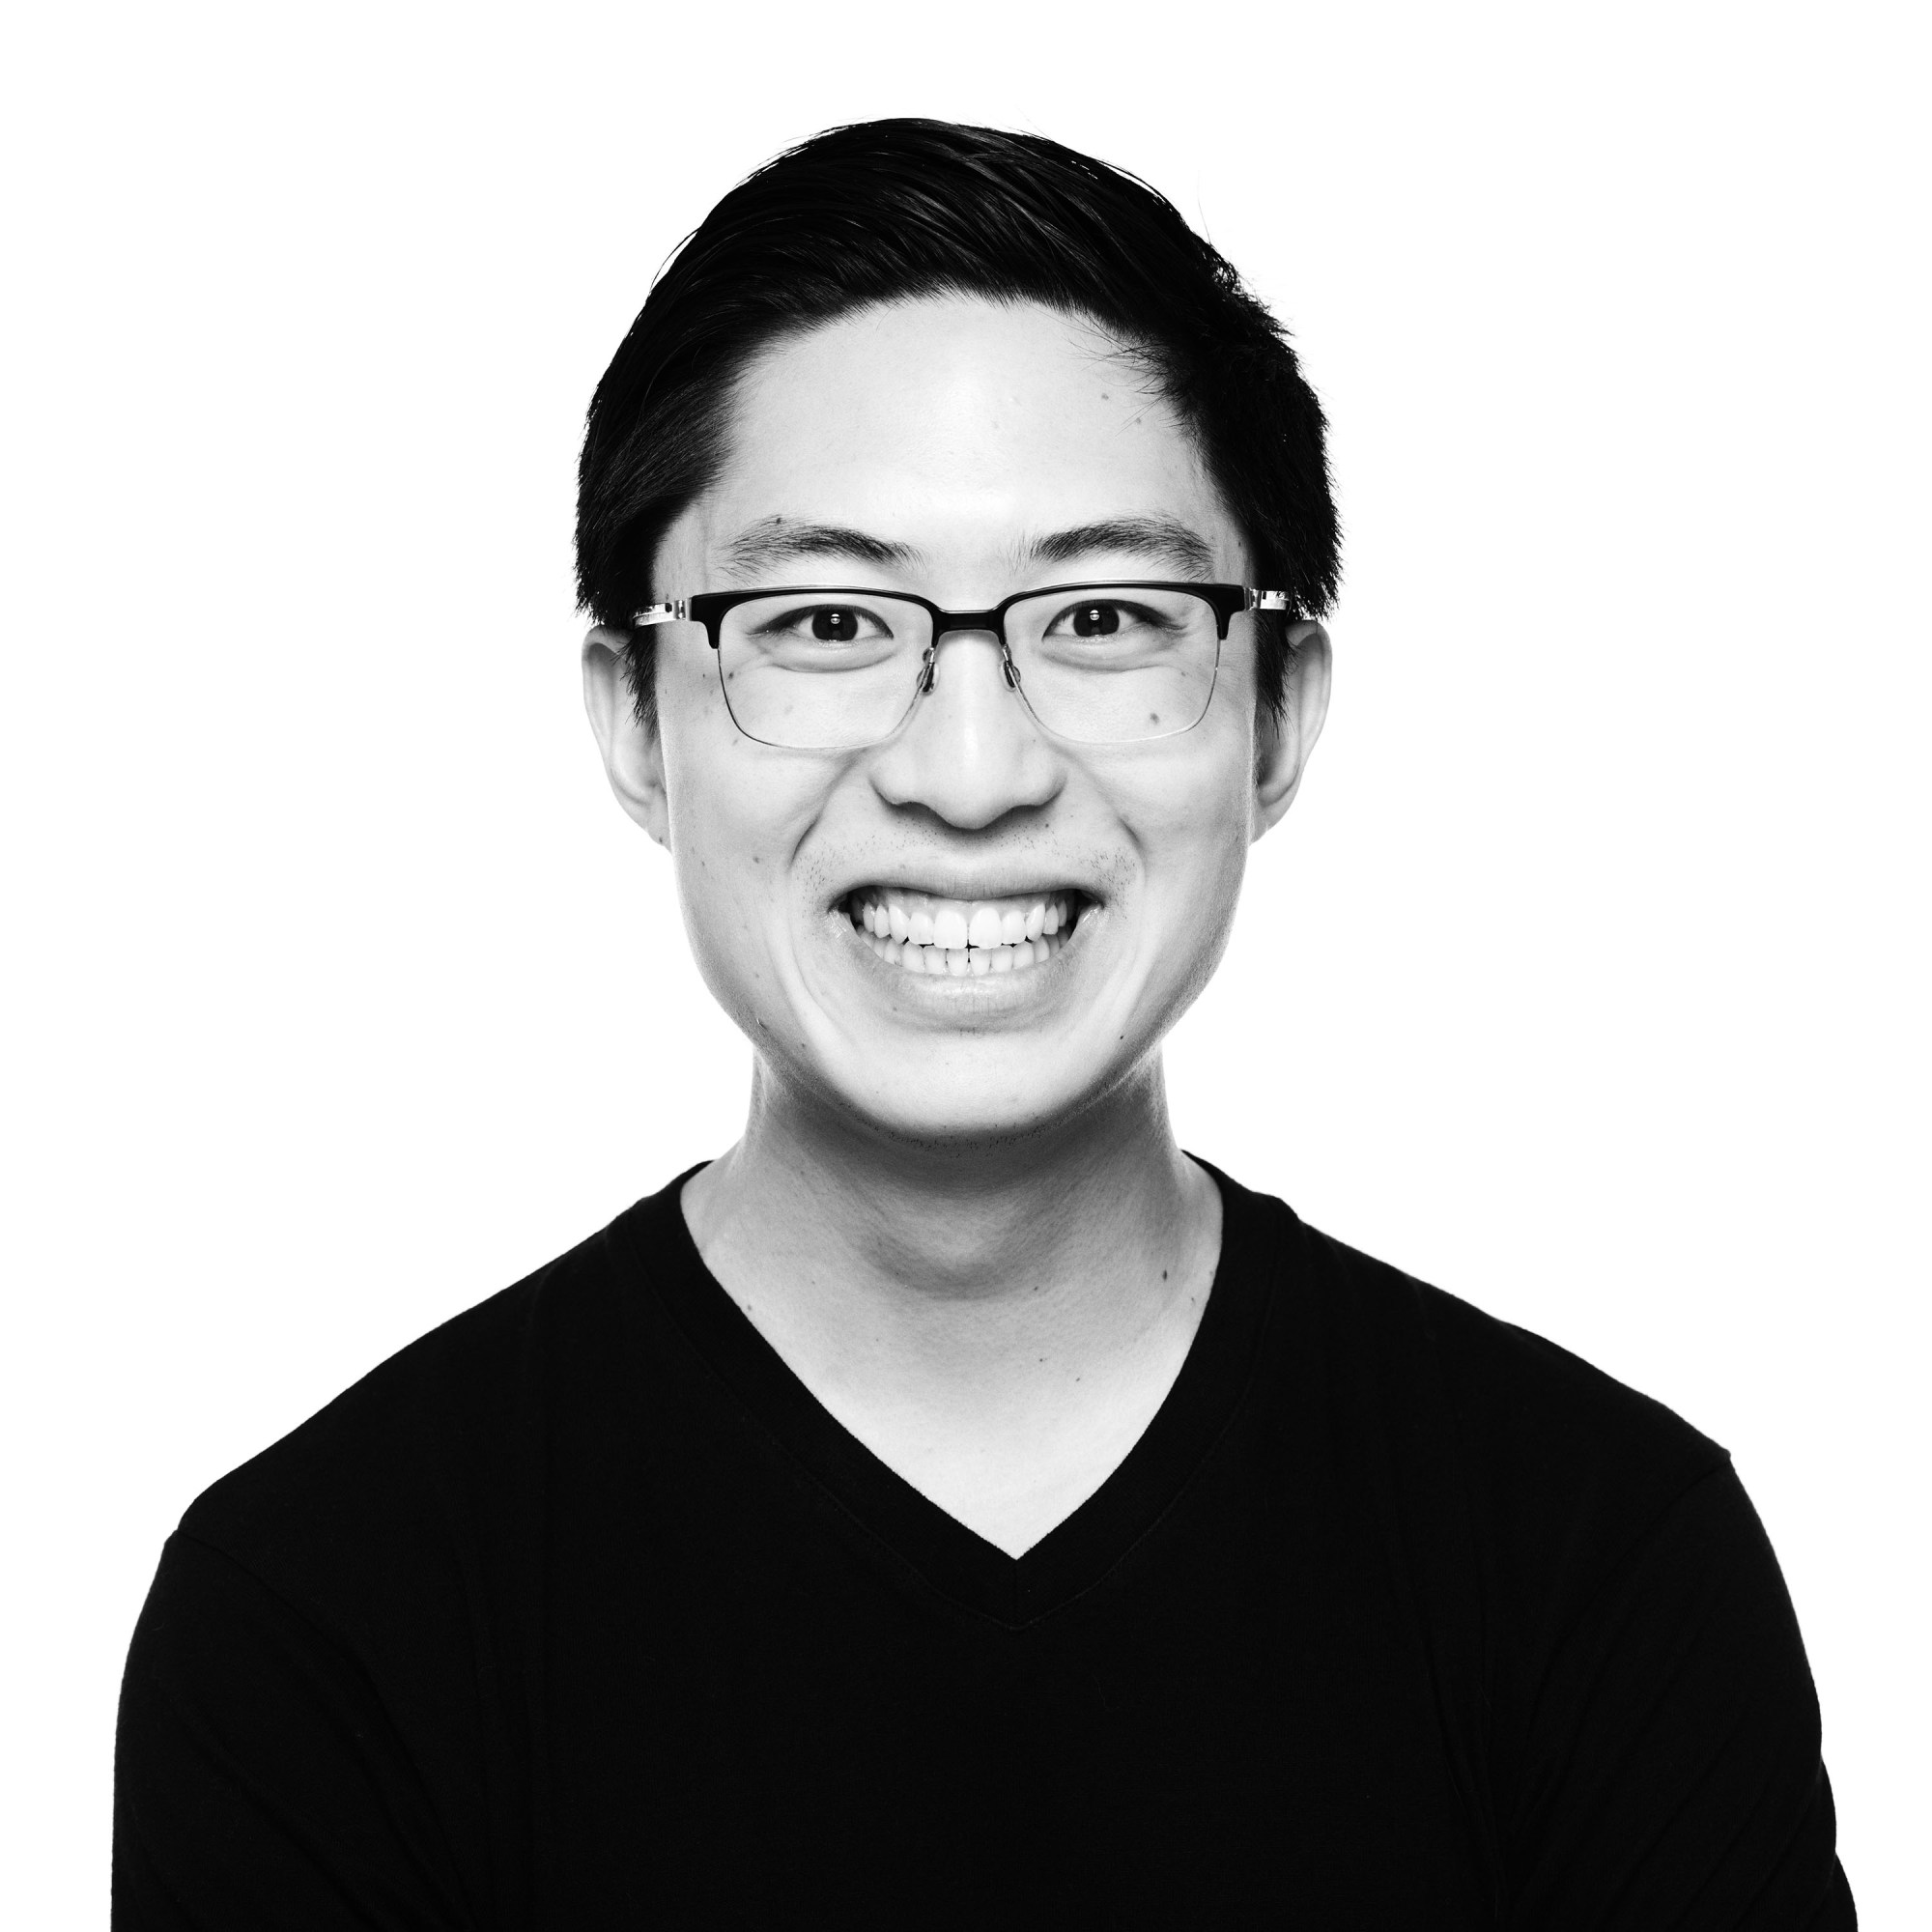 Black and White Headshot of ERIC KIM by John Hall